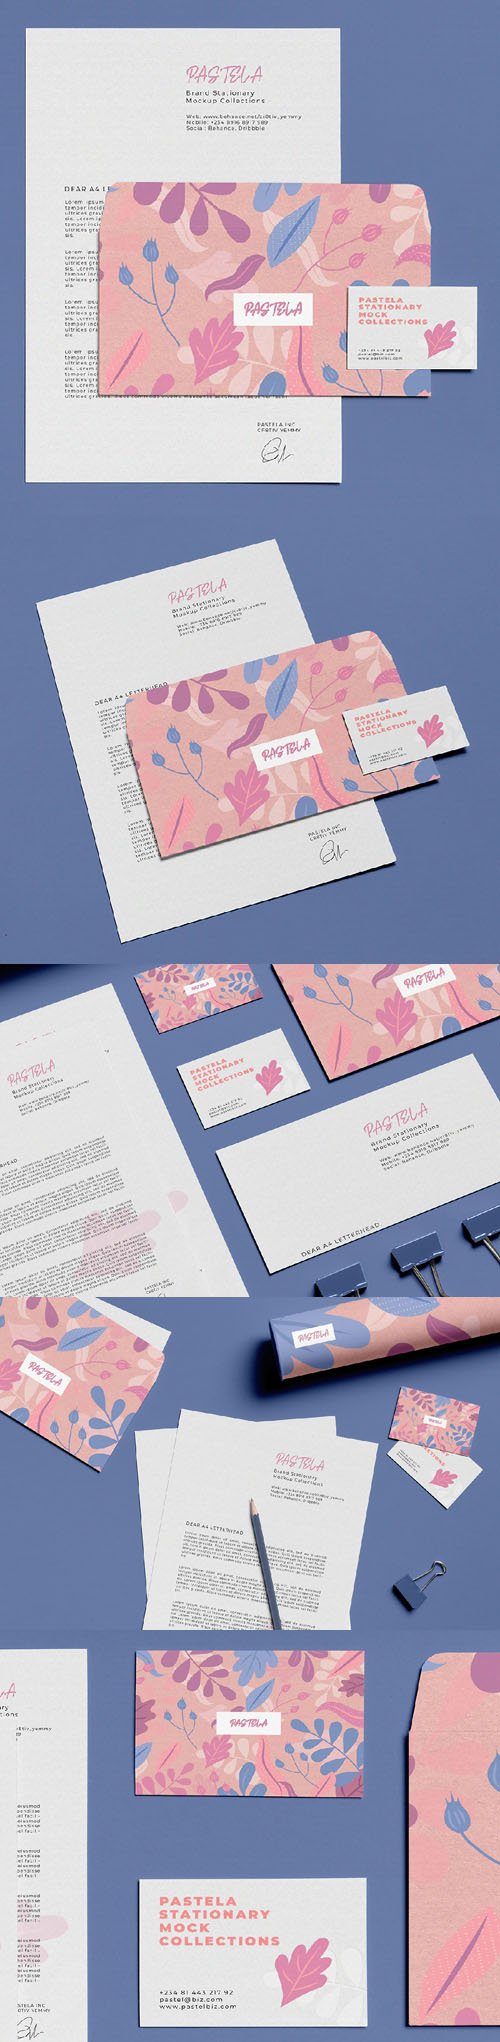 Stationery PSD Mockups Collection